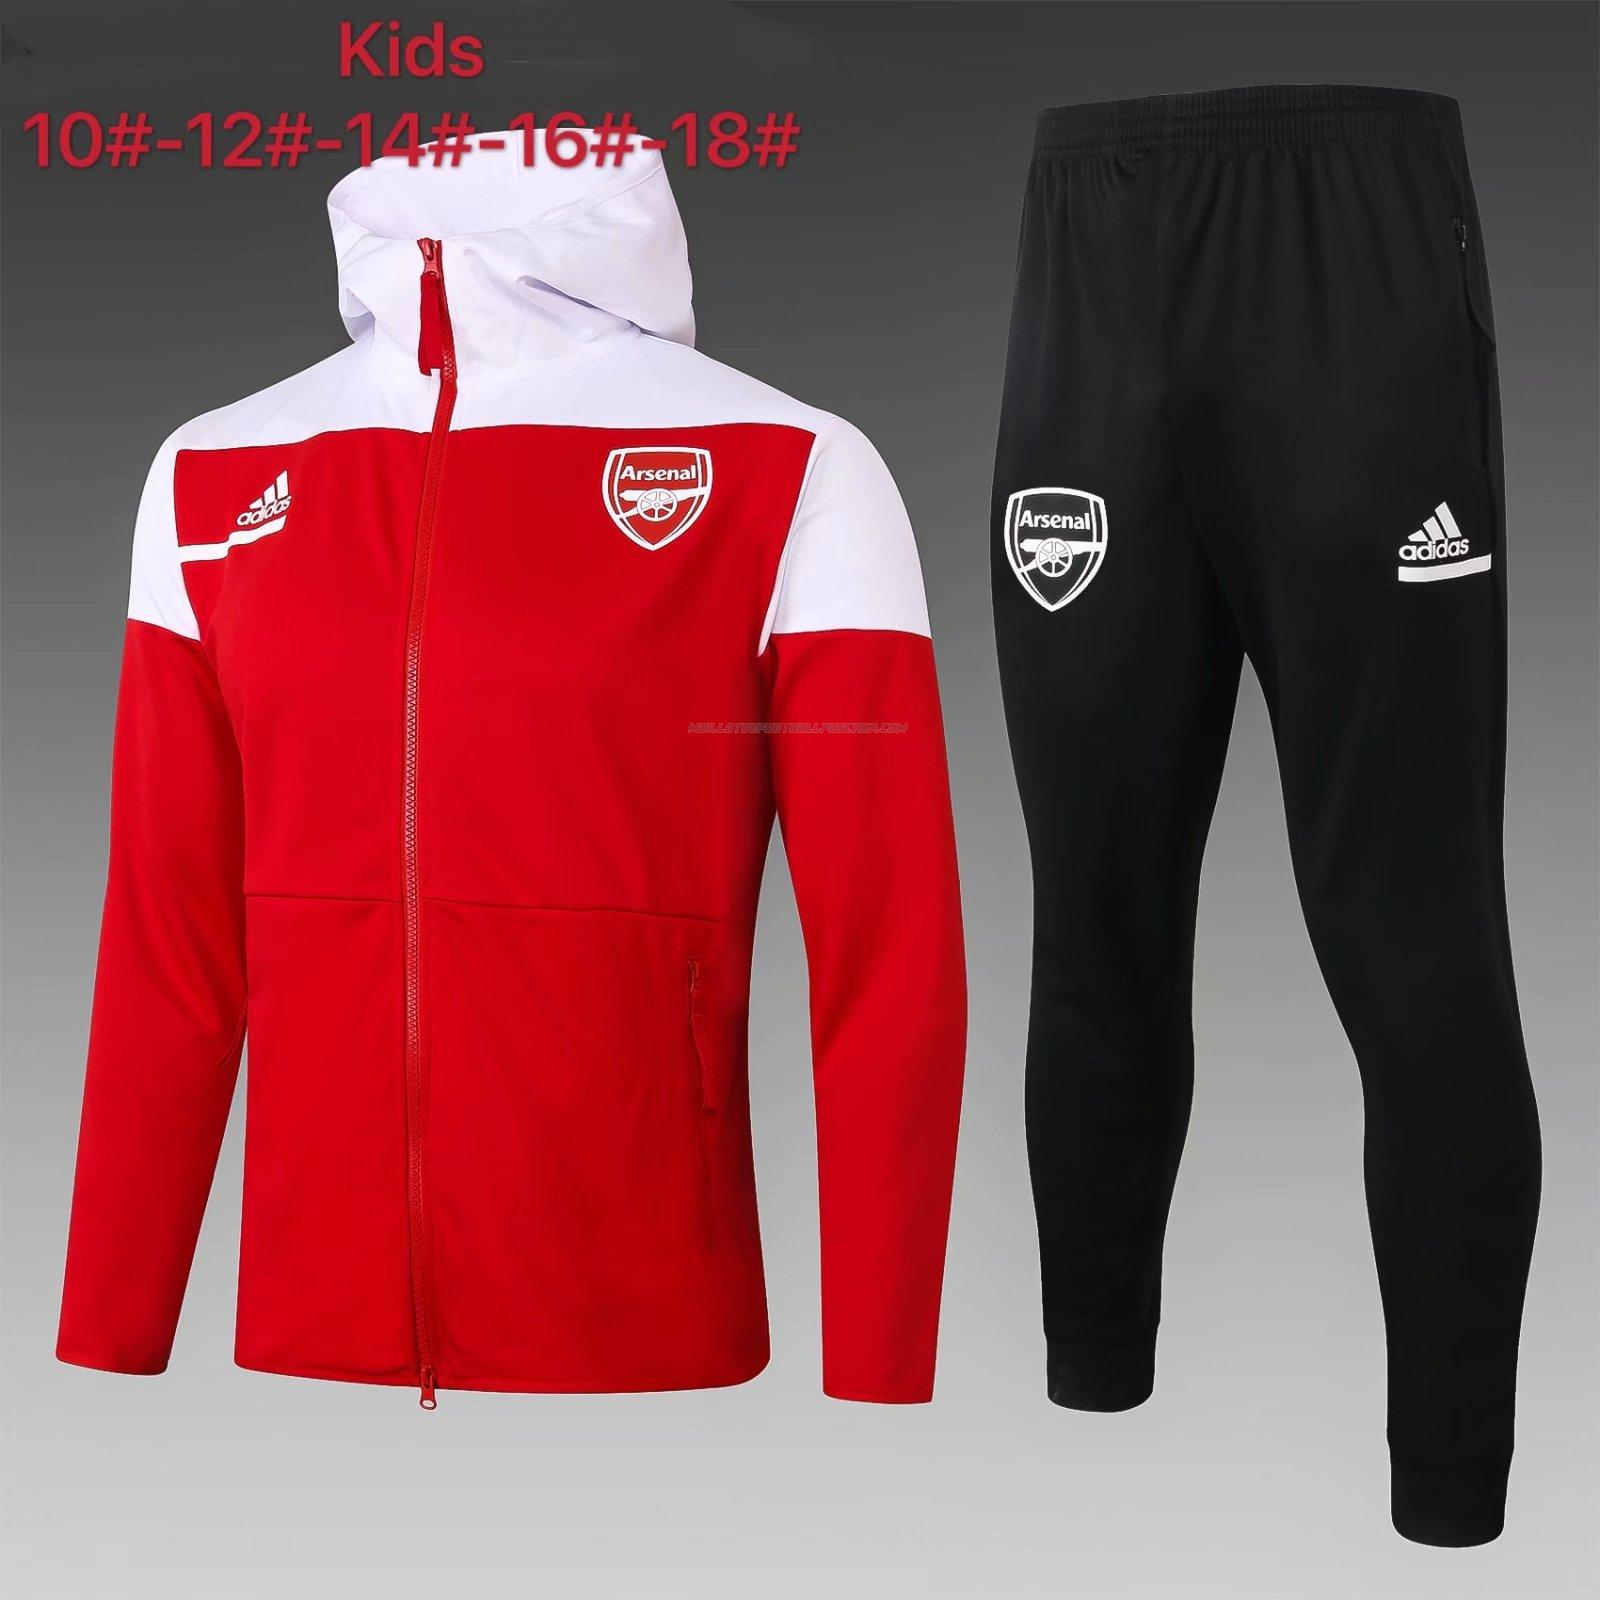 veste enfant arsenal rouge 2021